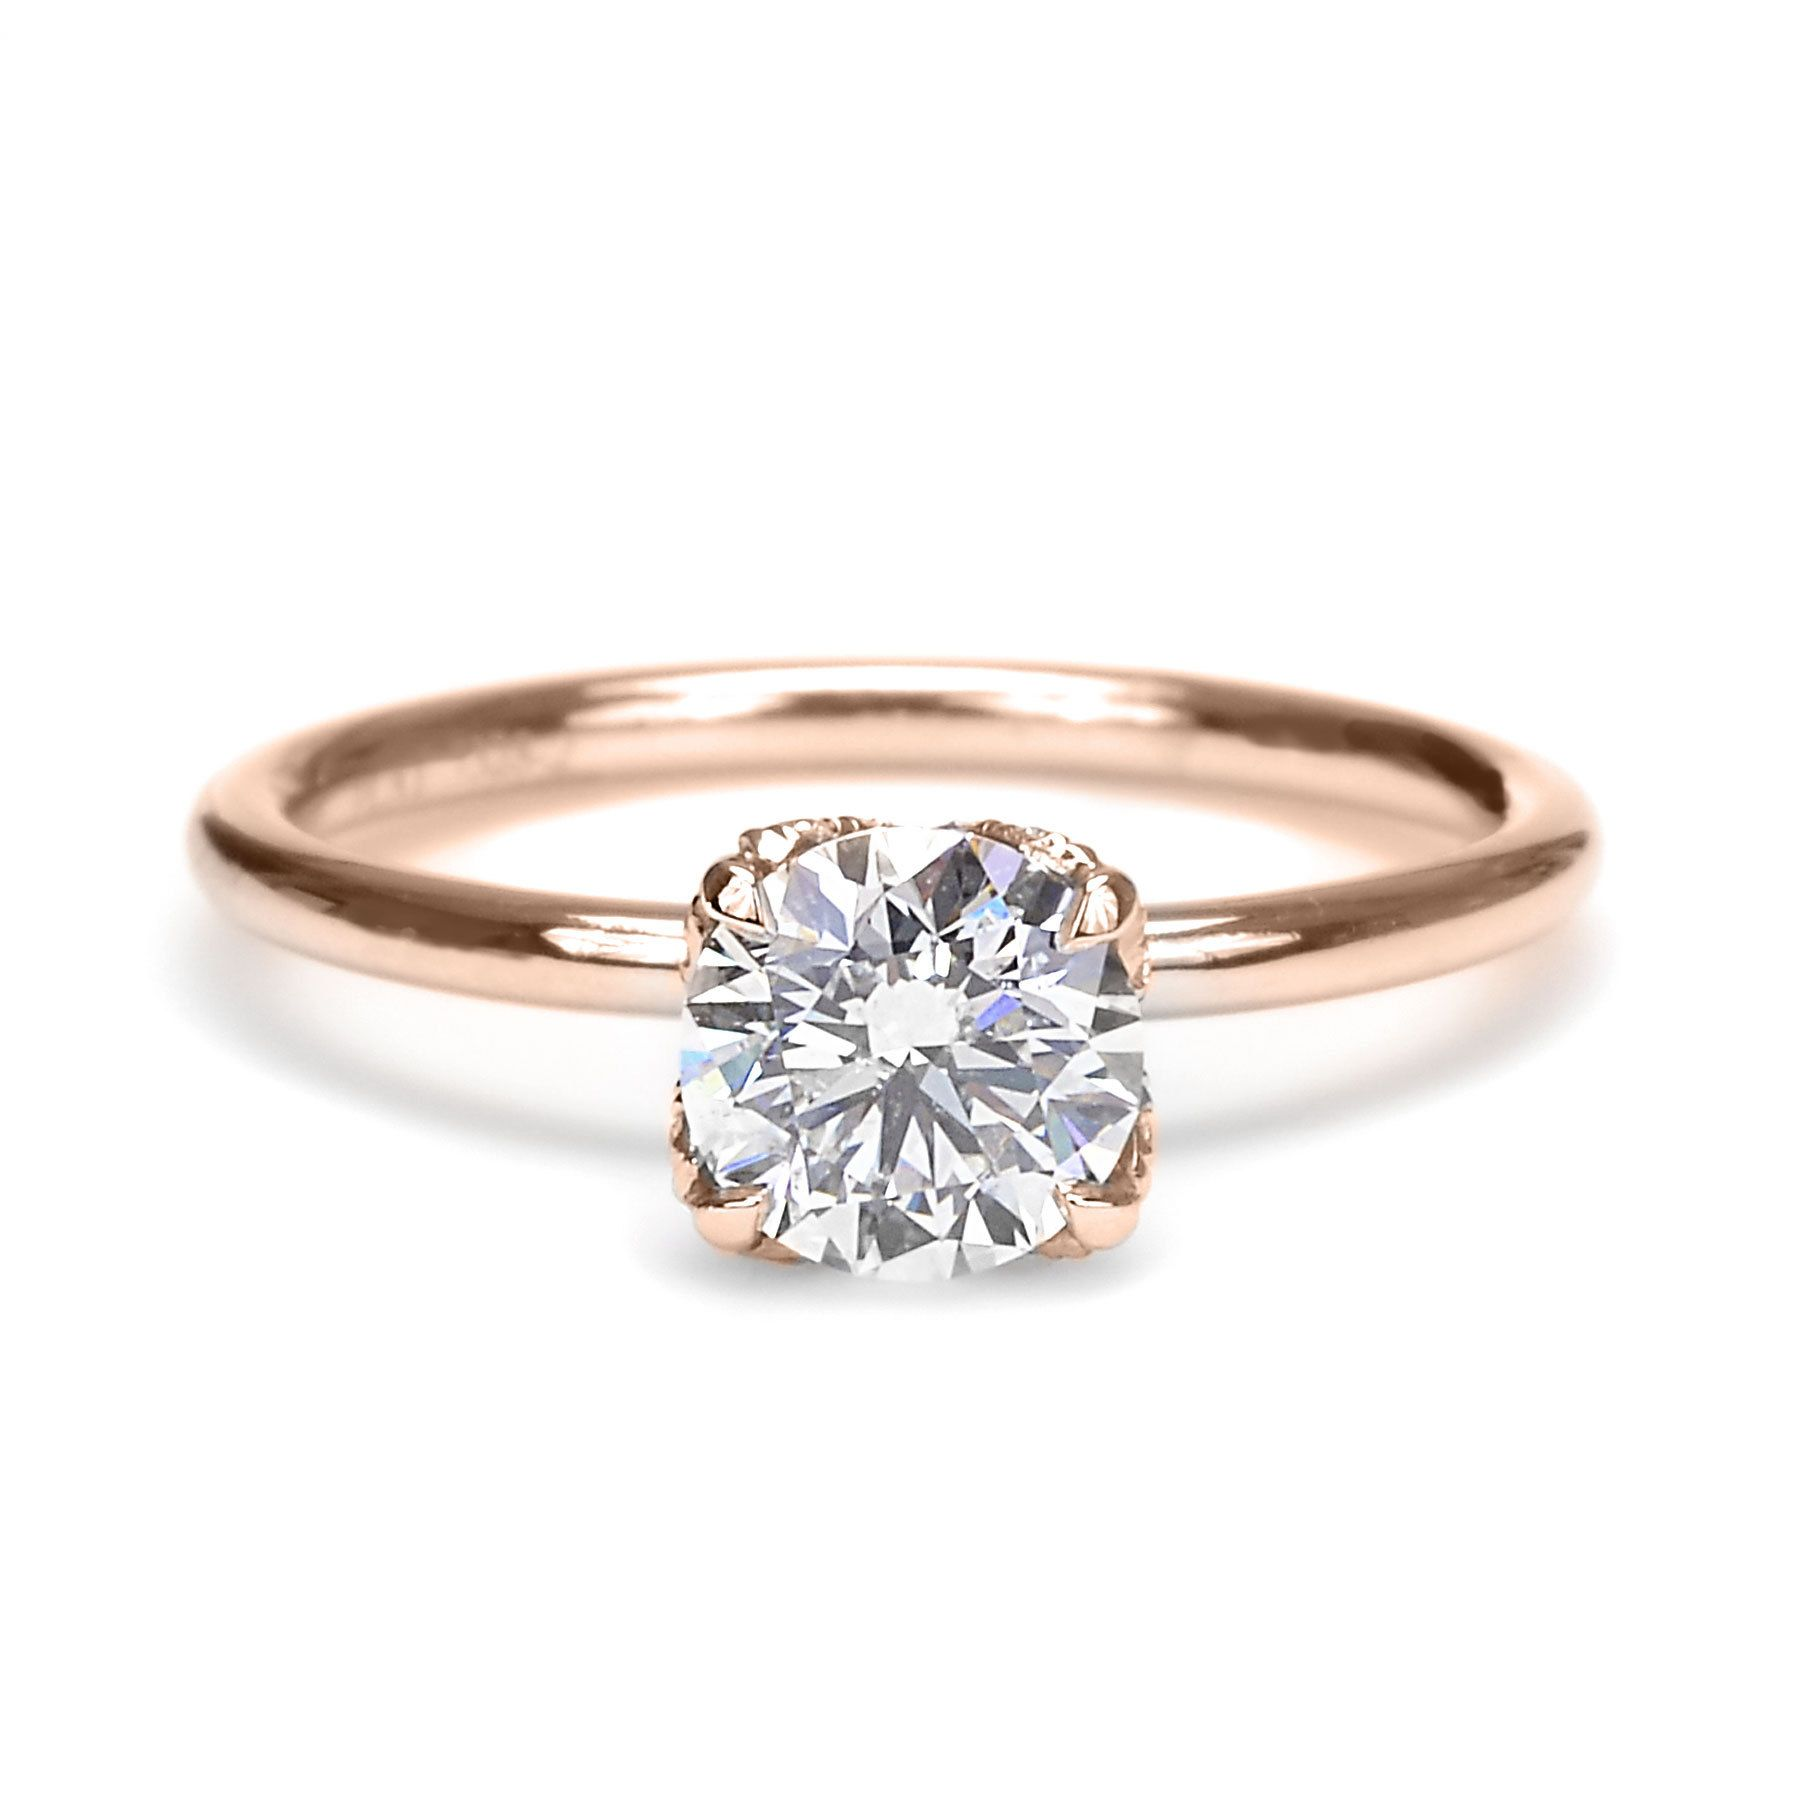 wedding new types us diamond attachment settings best engagement of jewellery ring pics luxury rings jewellry website